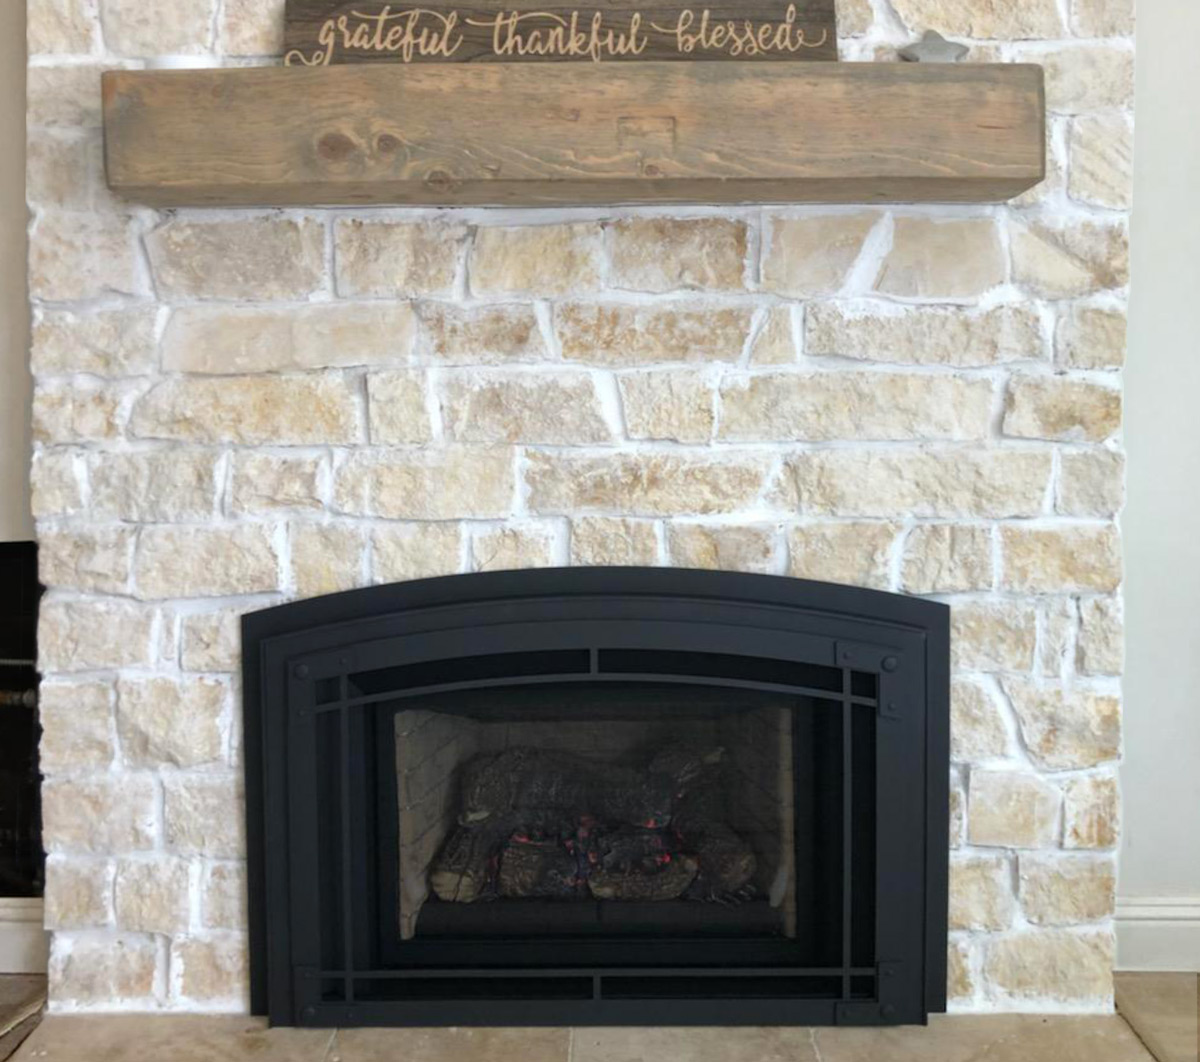 Electric Fireplace - After